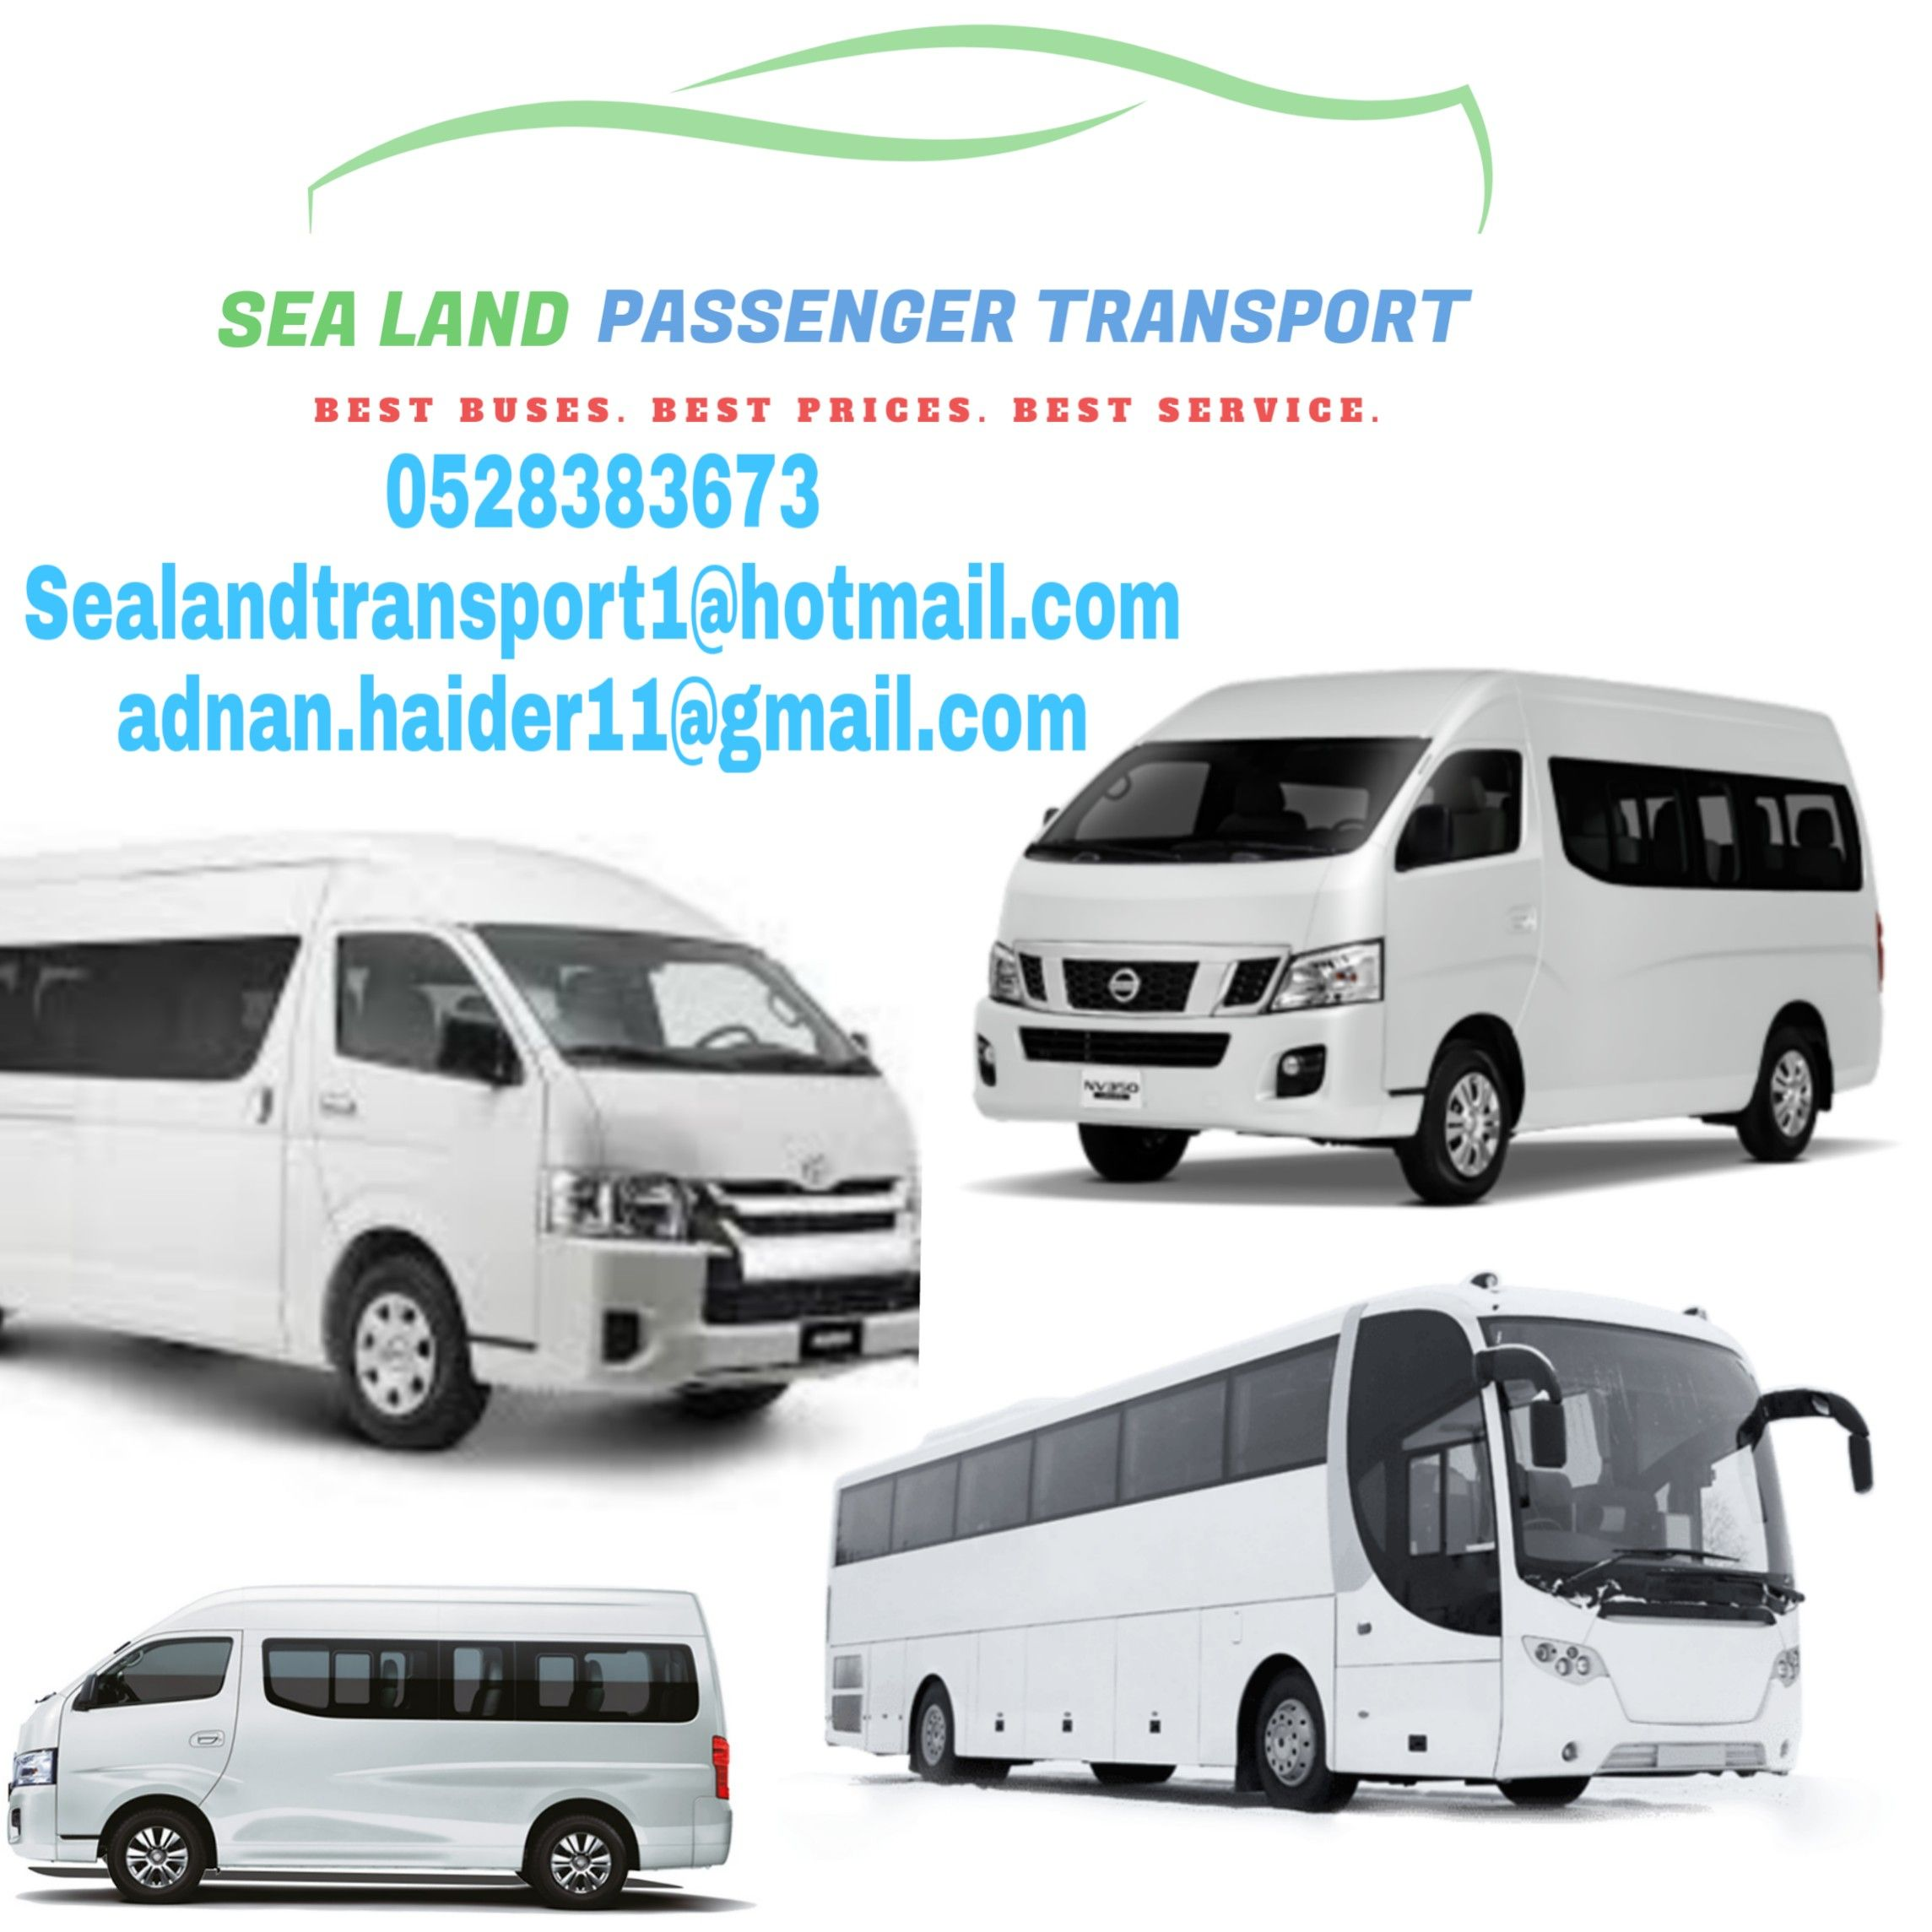 Our main features is Shuttle bus services, Staff bus